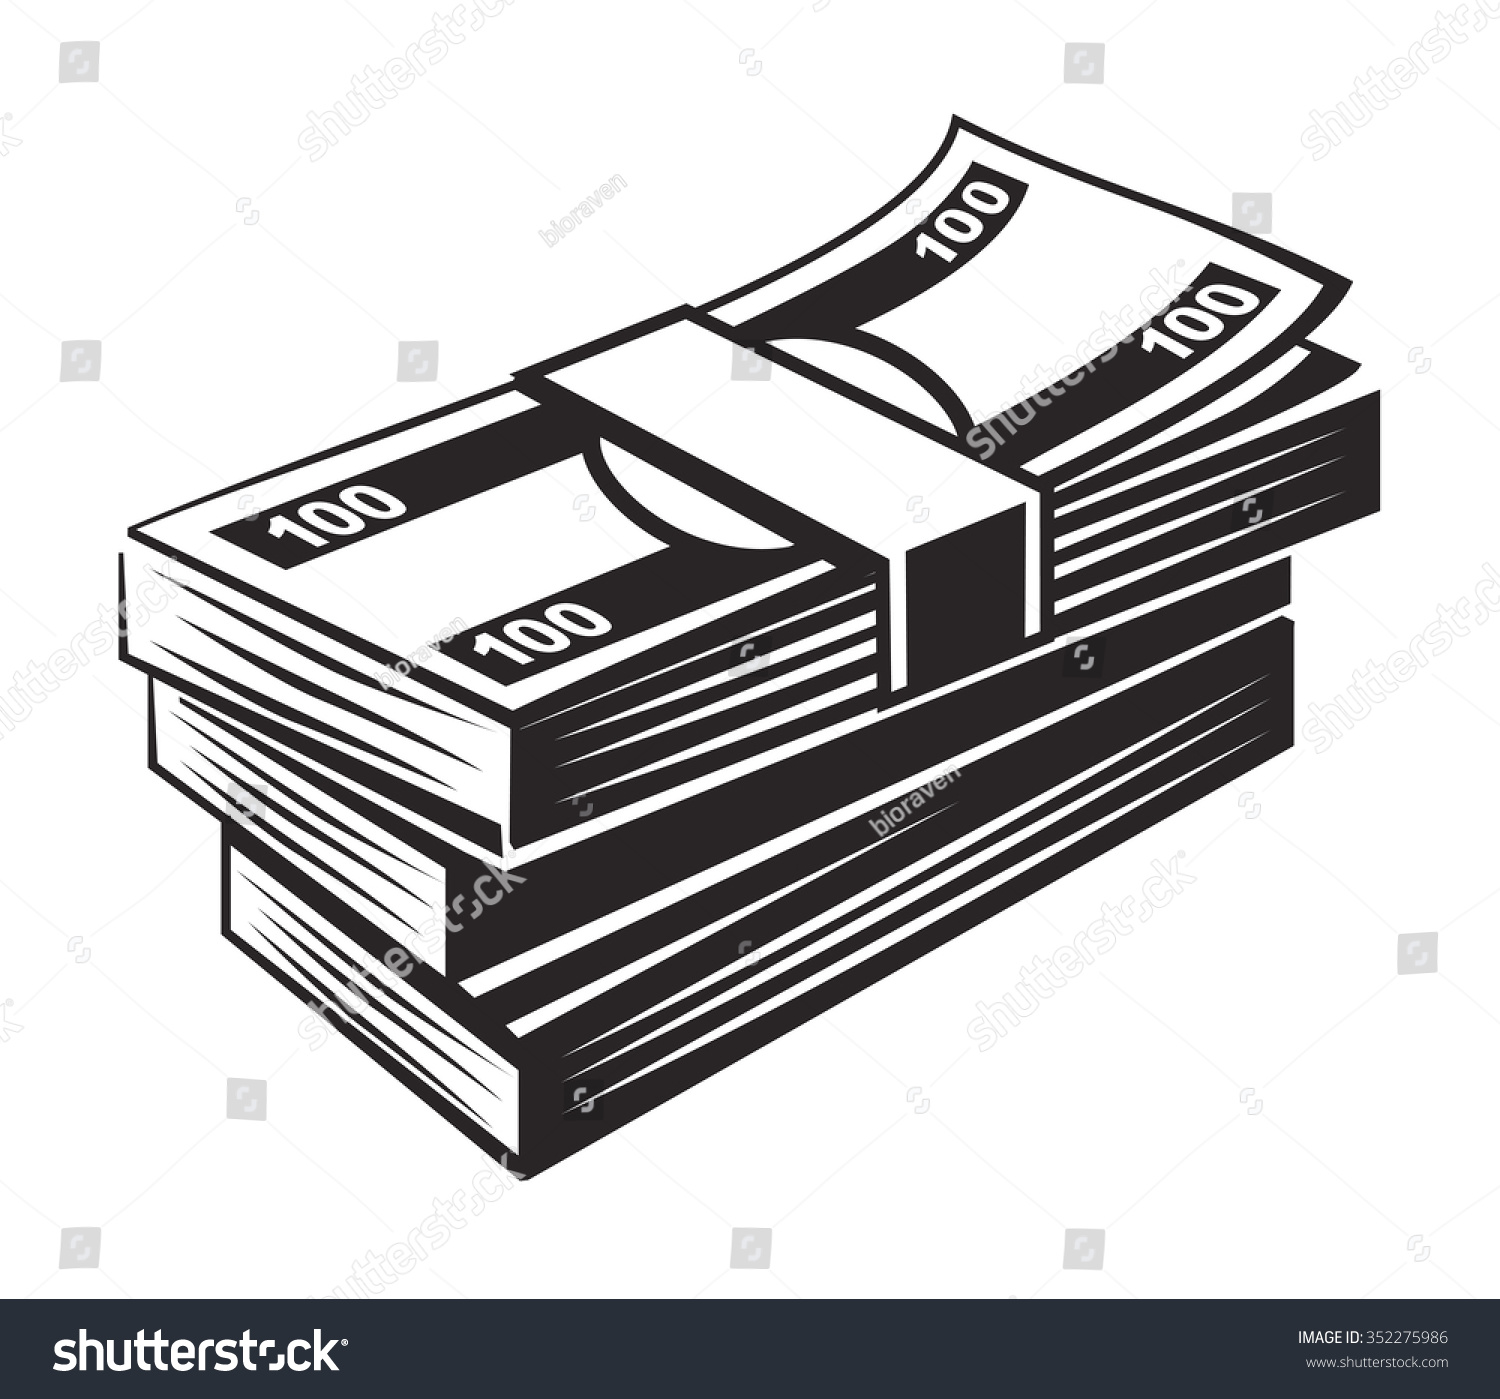 vector black money icon on white background 352275986